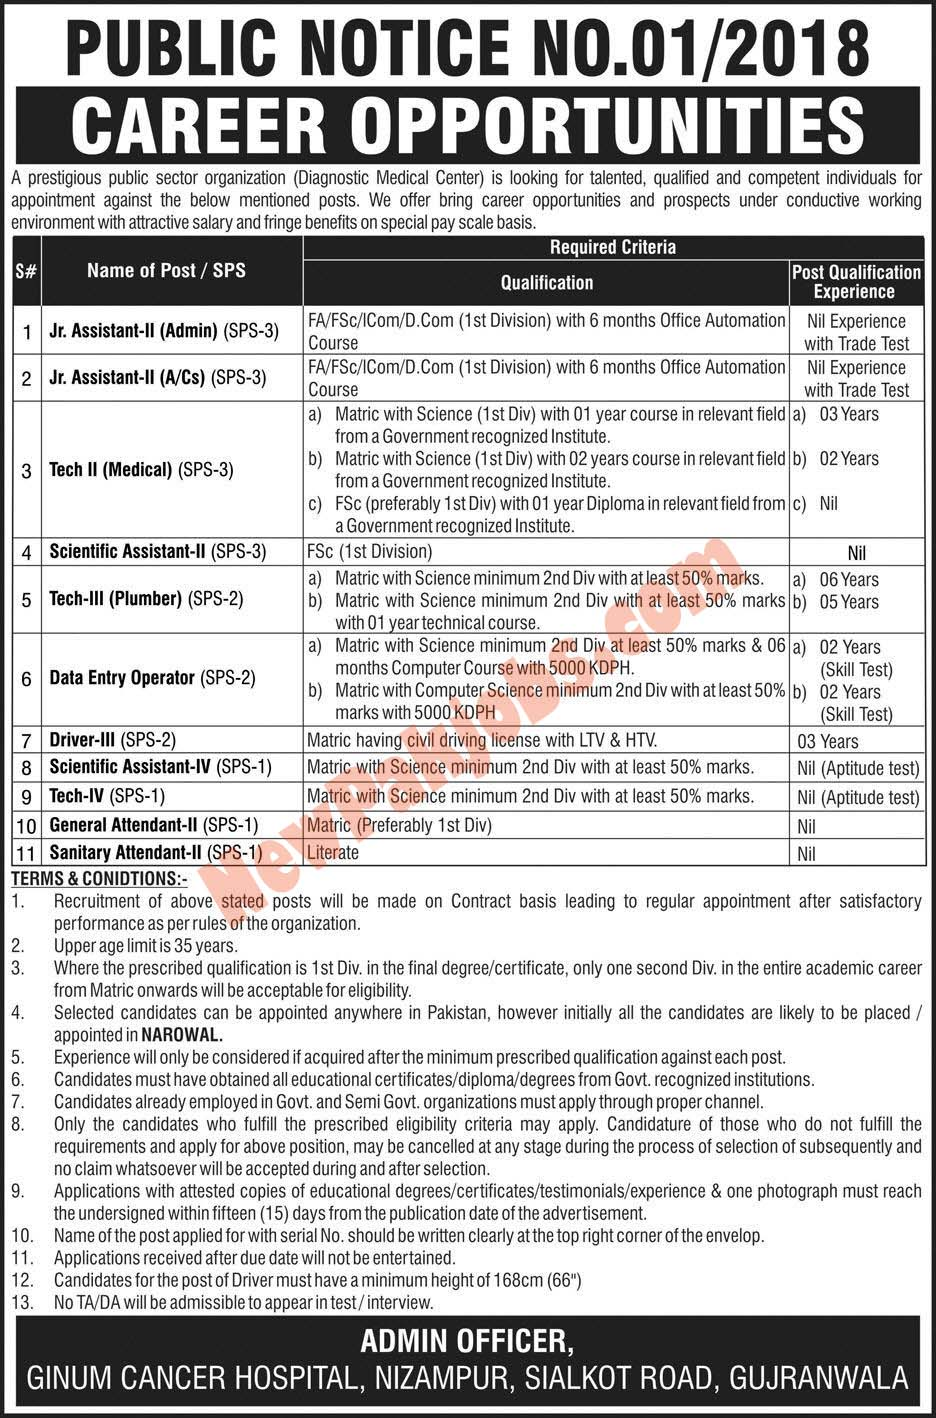 Latest NTS Jobs In Public Sector Organization Gujranwala 2018